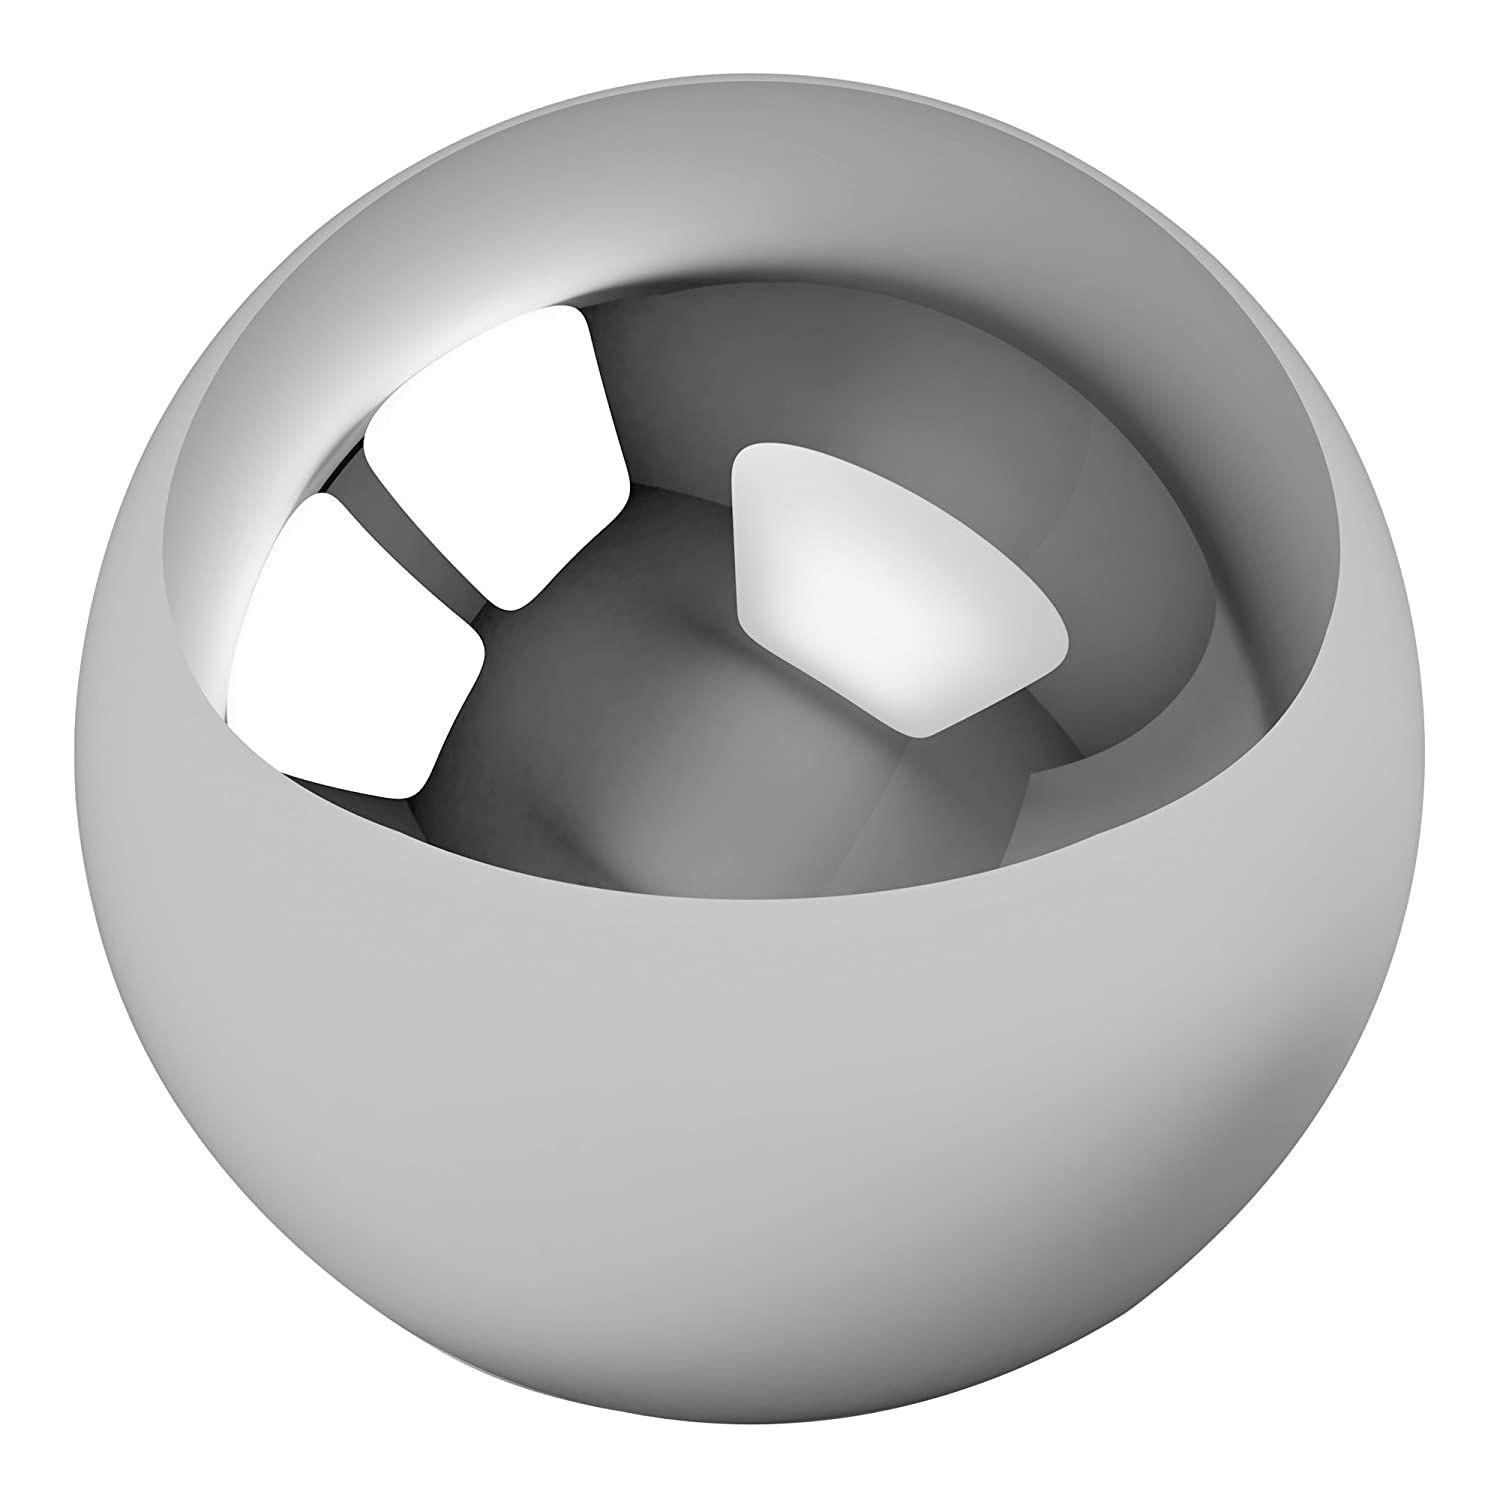 One 2 in Chrome Steel Bearing Ball